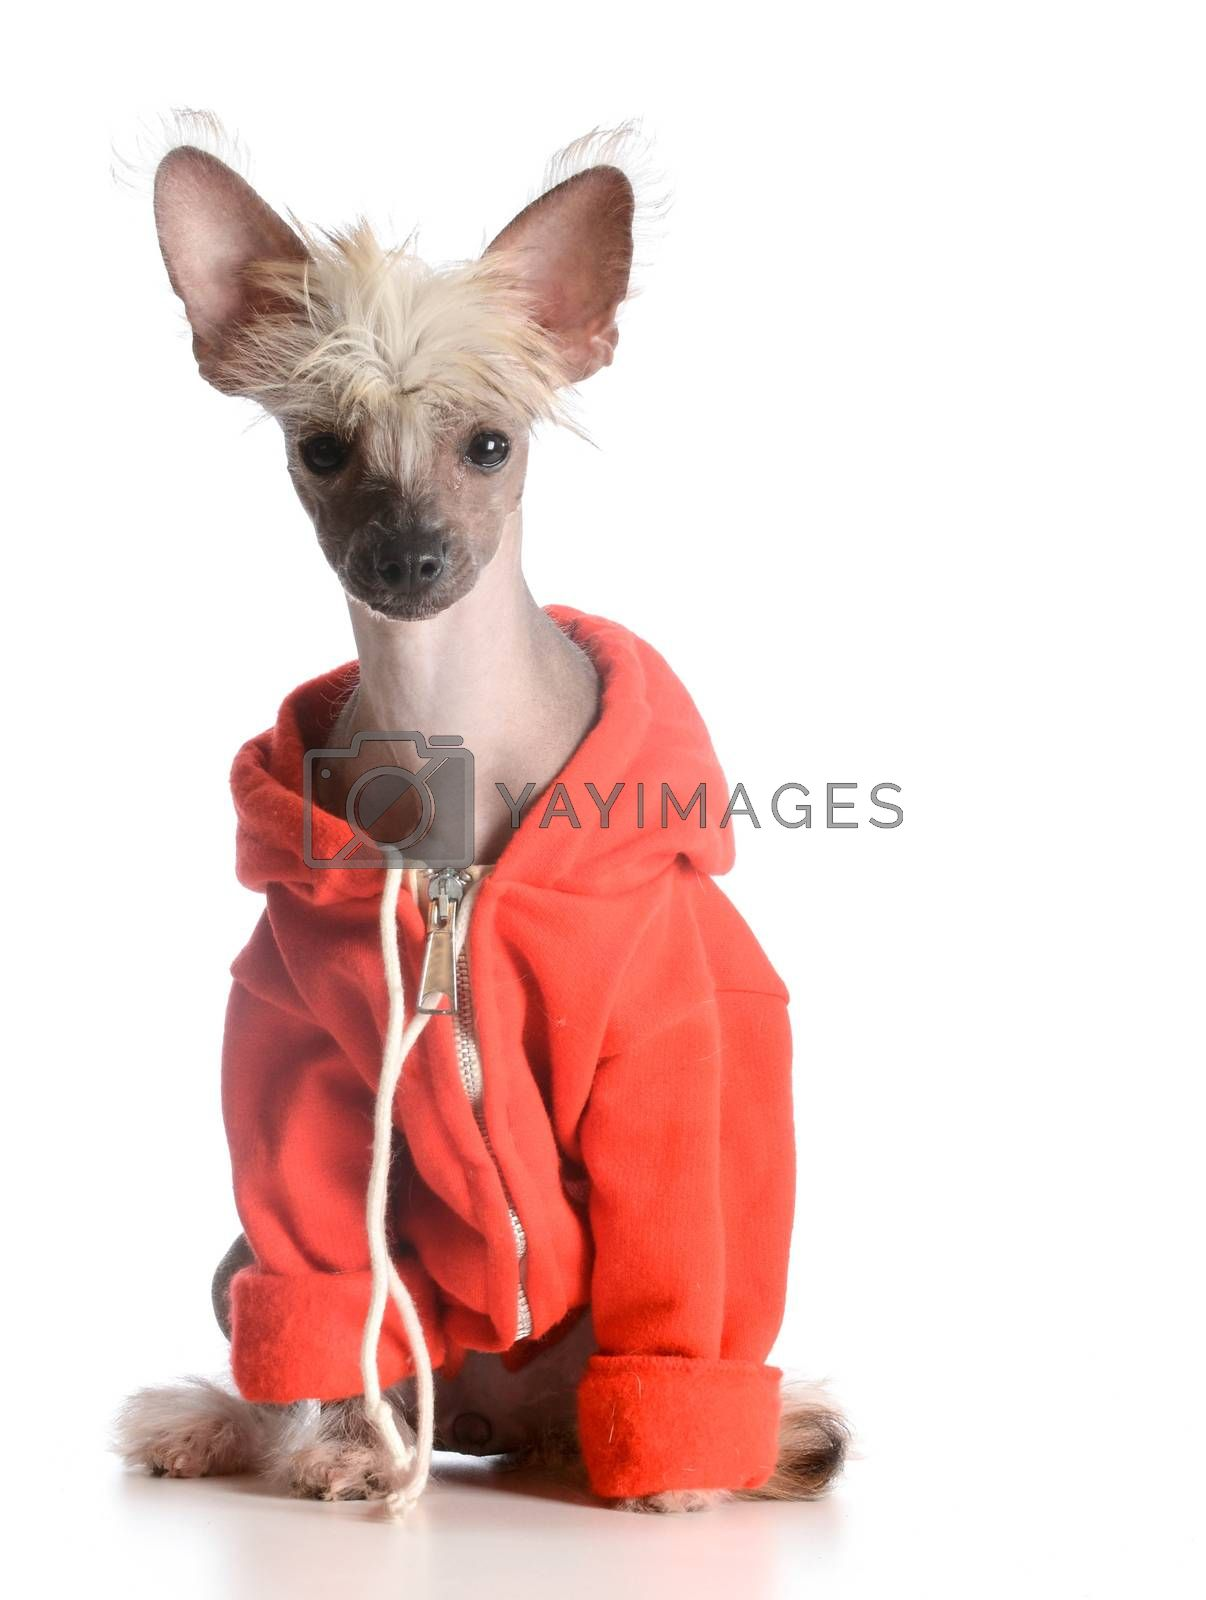 Royalty free image of dog wearing sweater by willeecole123